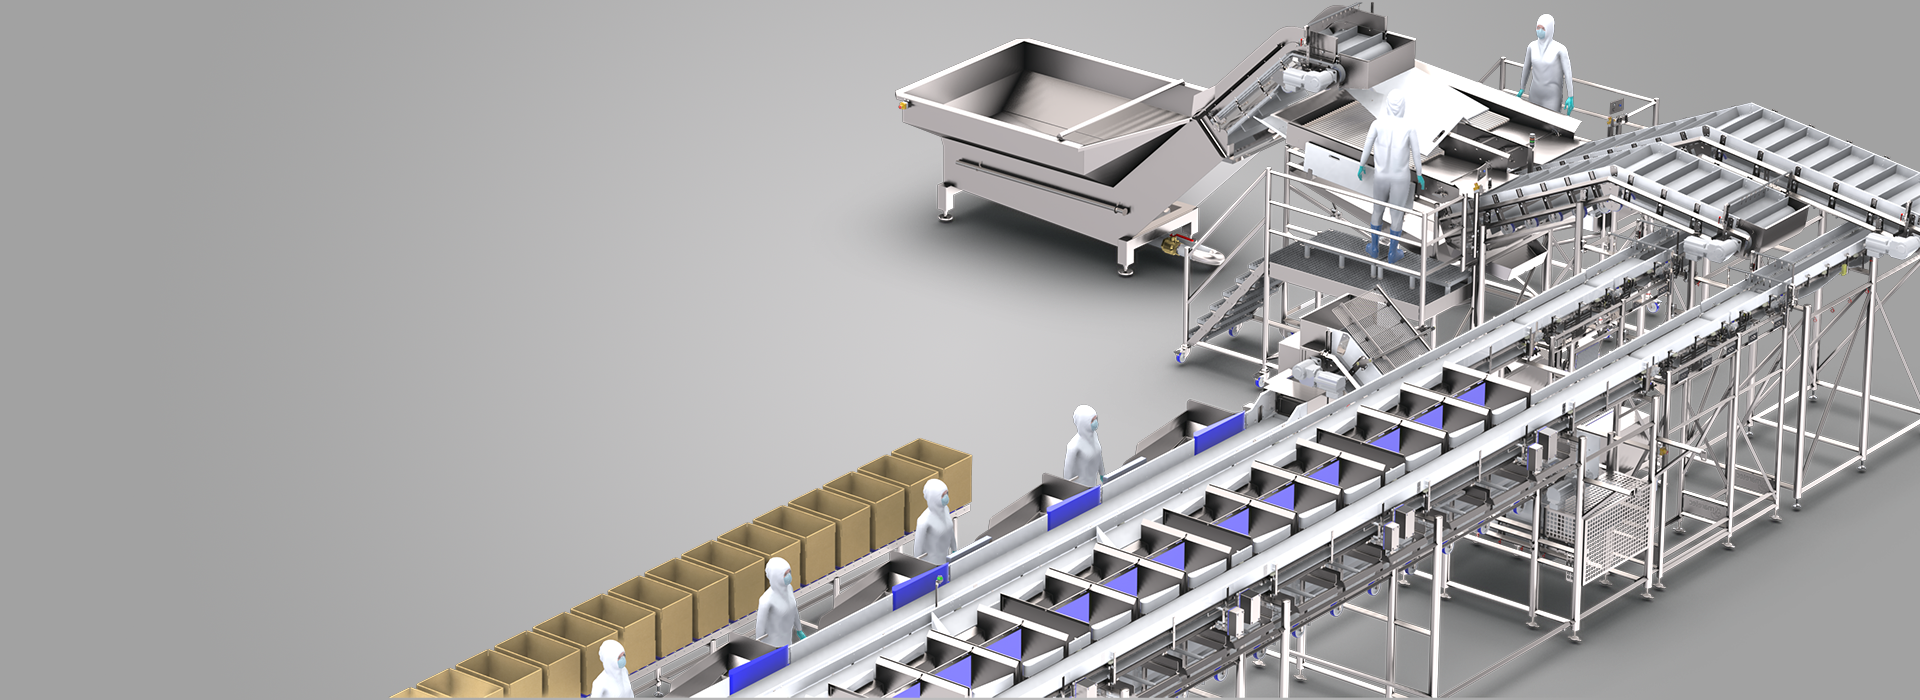 Integrated food processing solutions for fish